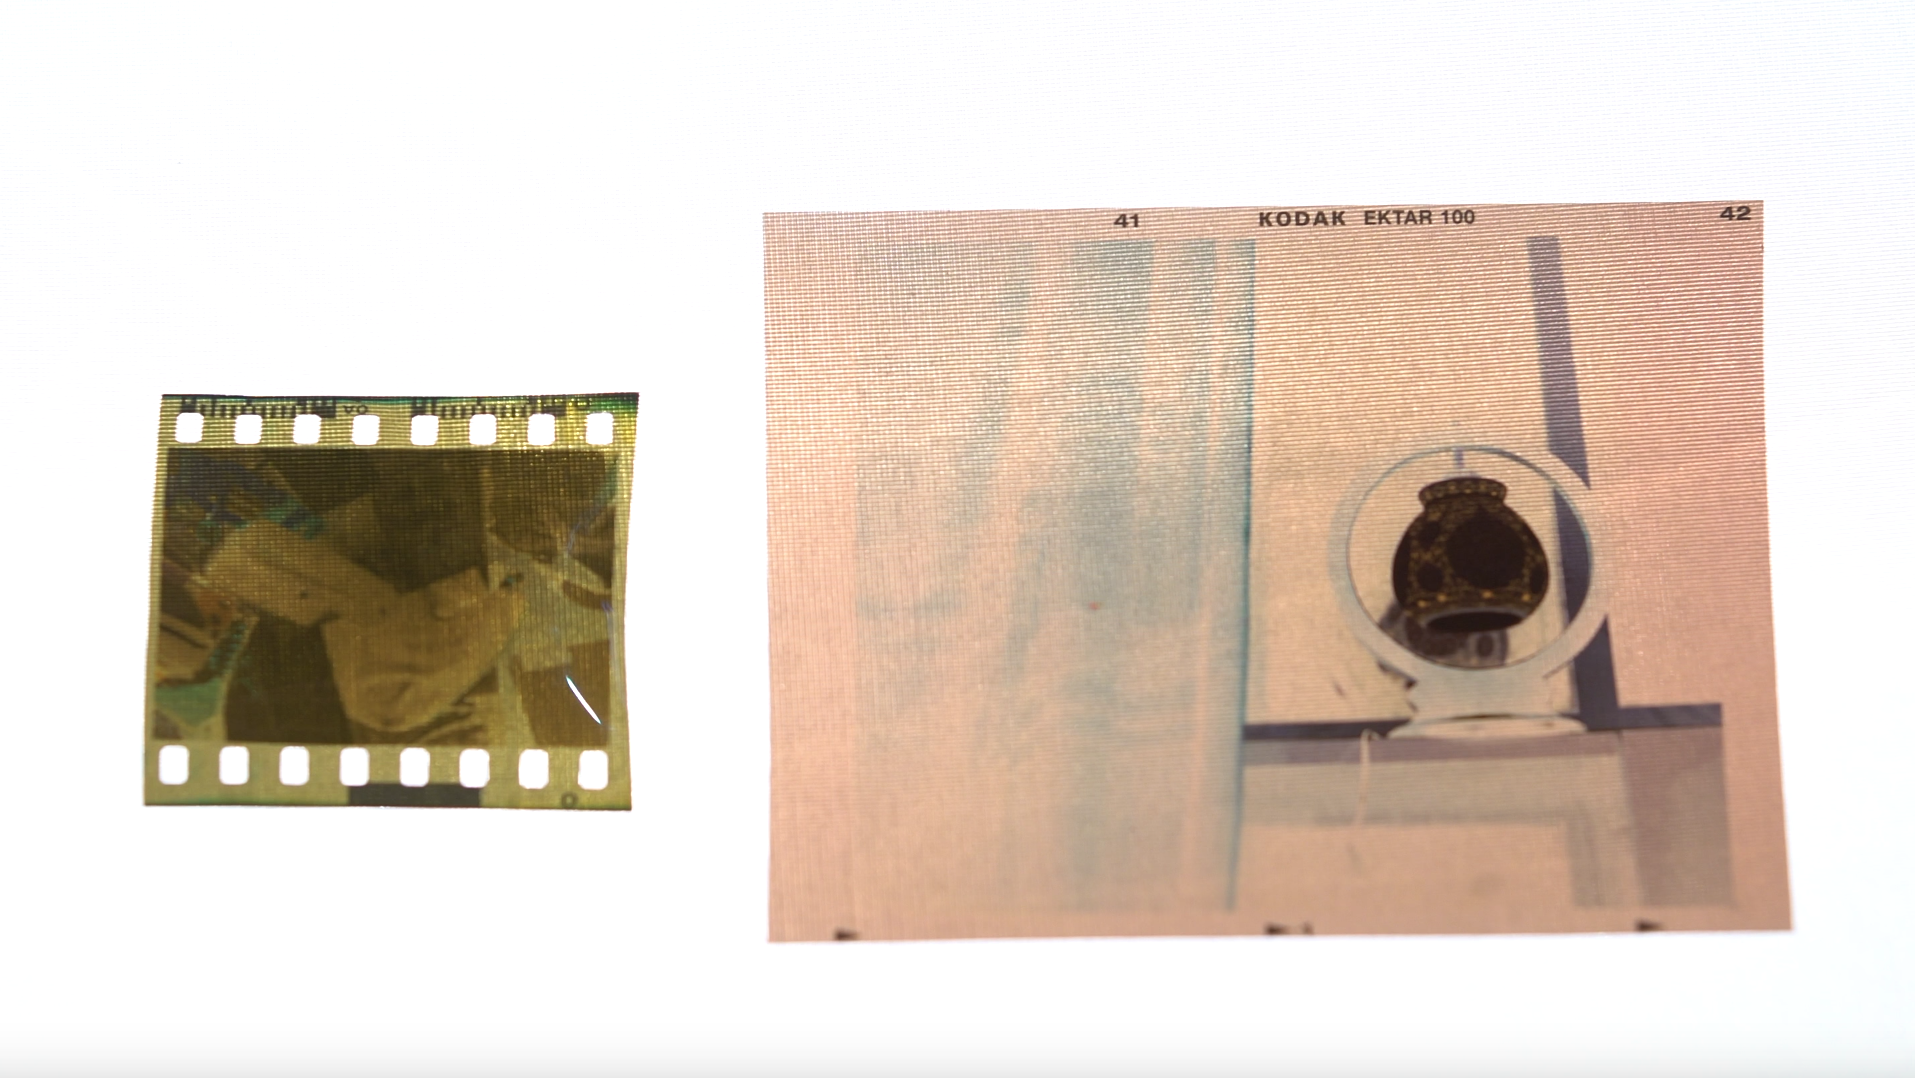 A standard 35mm film negative vs a medium format negative on the right. One can only imagine what it was like for photographers who had to carry such huge devices.